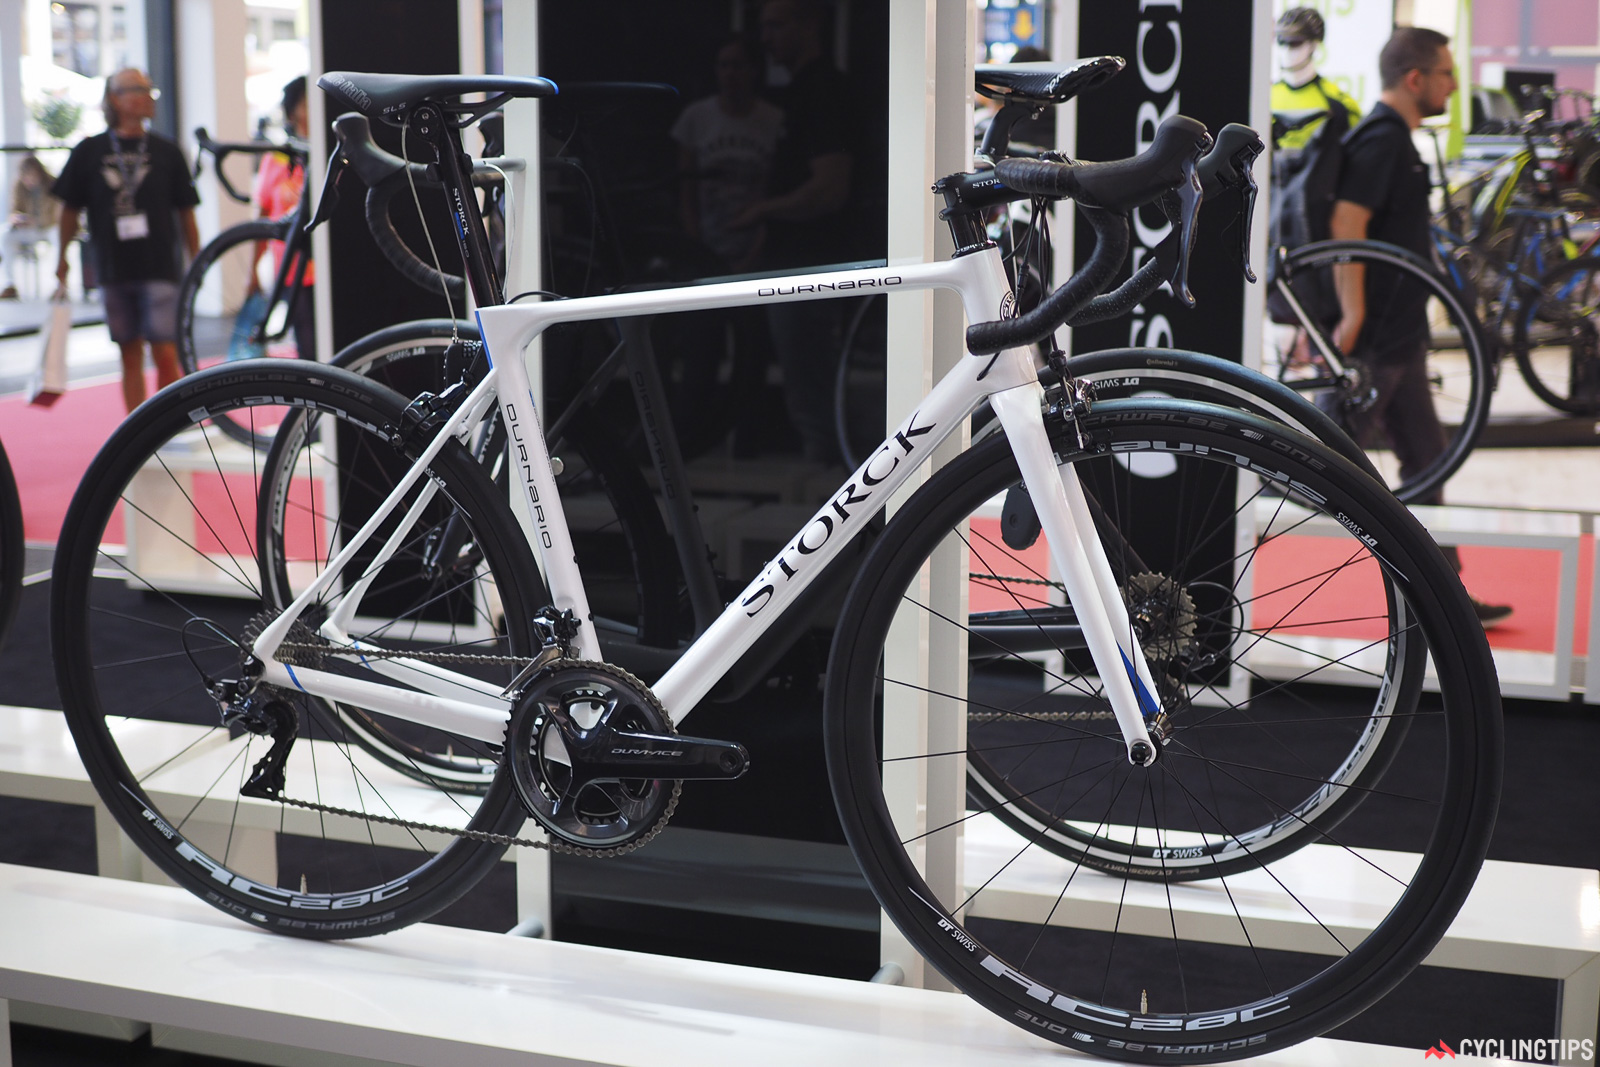 Also new from Storck is the Durnario endurance road model, built with flattened frame sections and room for 28mm-wide tires to smooth out the ride. Photo: James Huang.